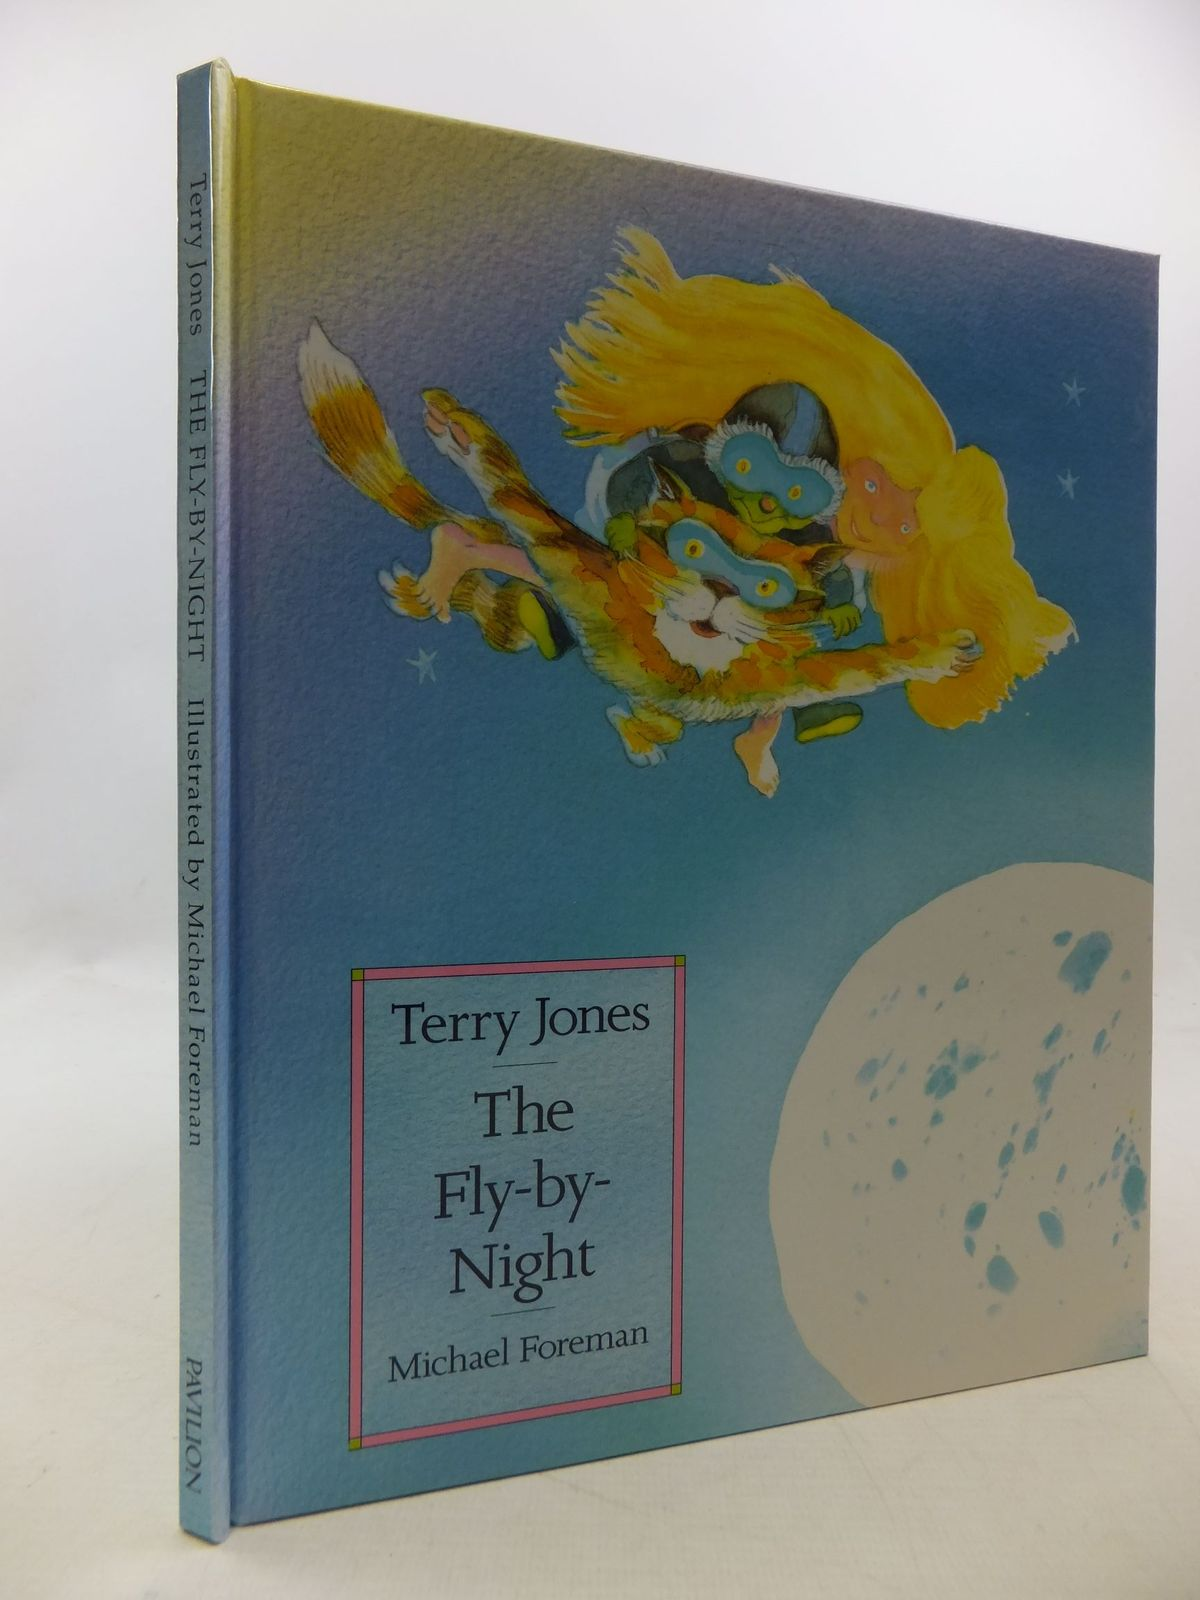 Photo of THE FLY-BY-NIGHT written by Jones, Terry illustrated by Foreman, Michael published by Pavilion Books Ltd. (STOCK CODE: 1710254)  for sale by Stella & Rose's Books